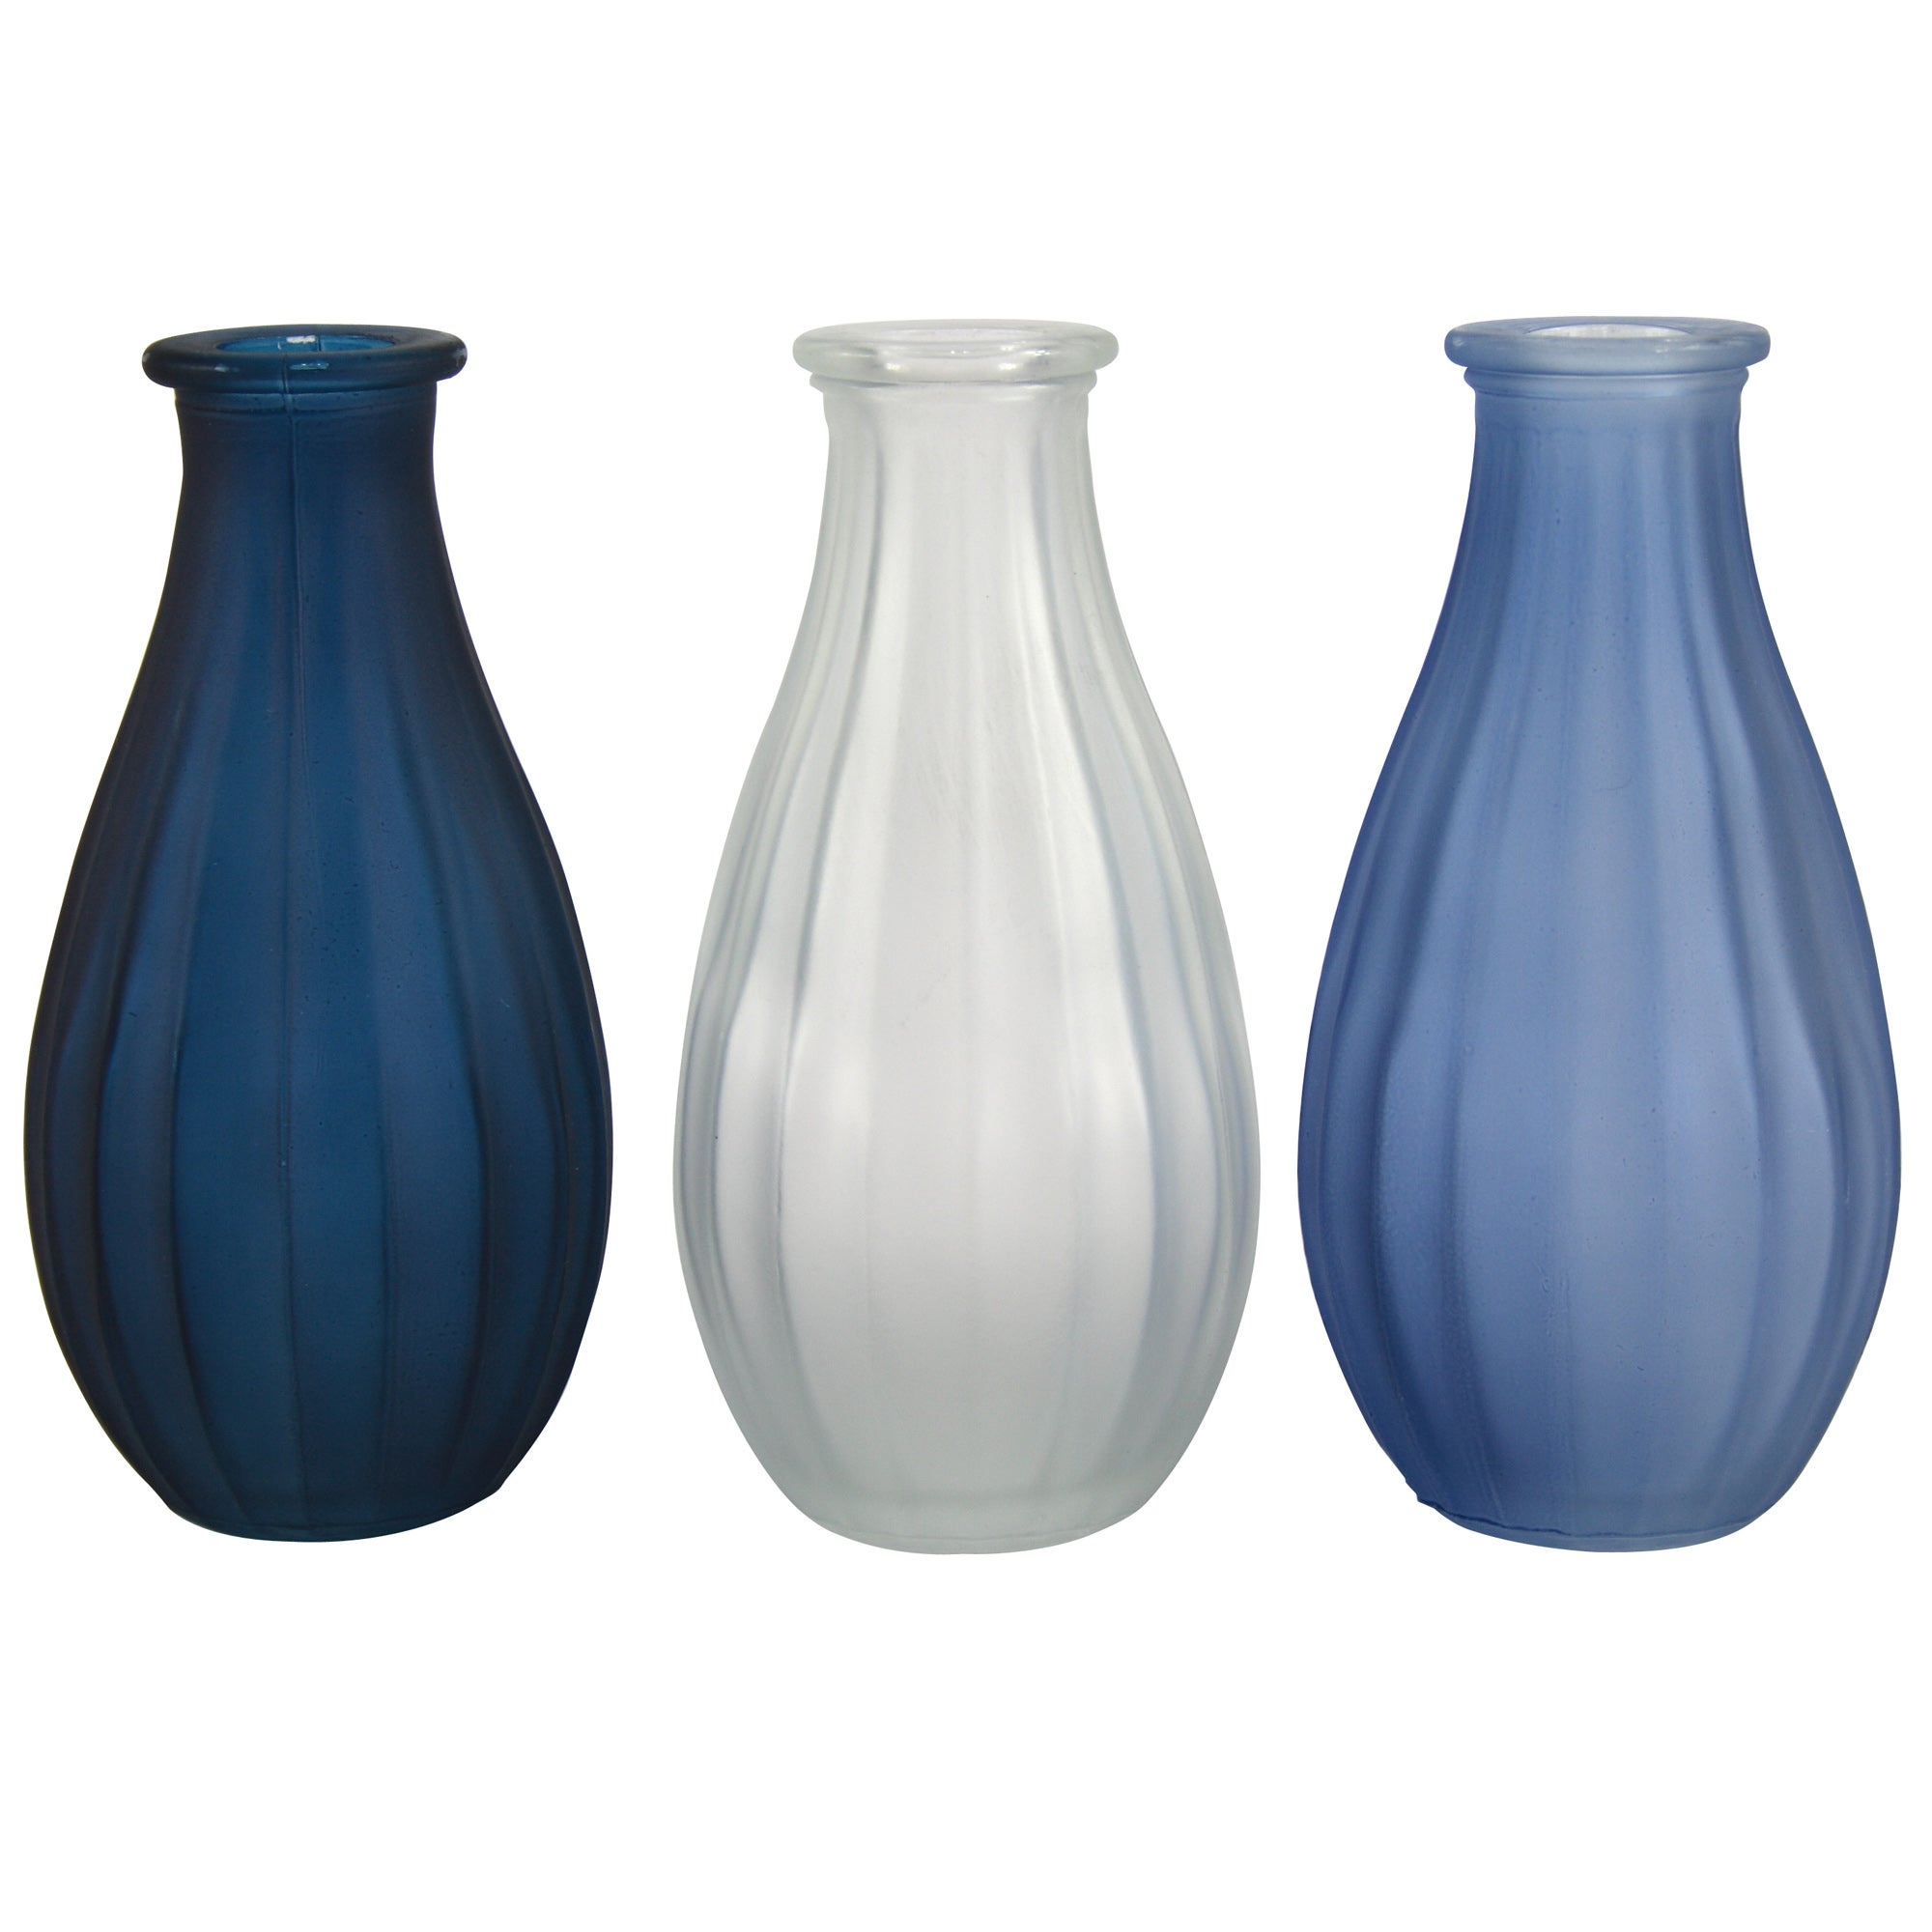 Coastal Collection Glass Vases